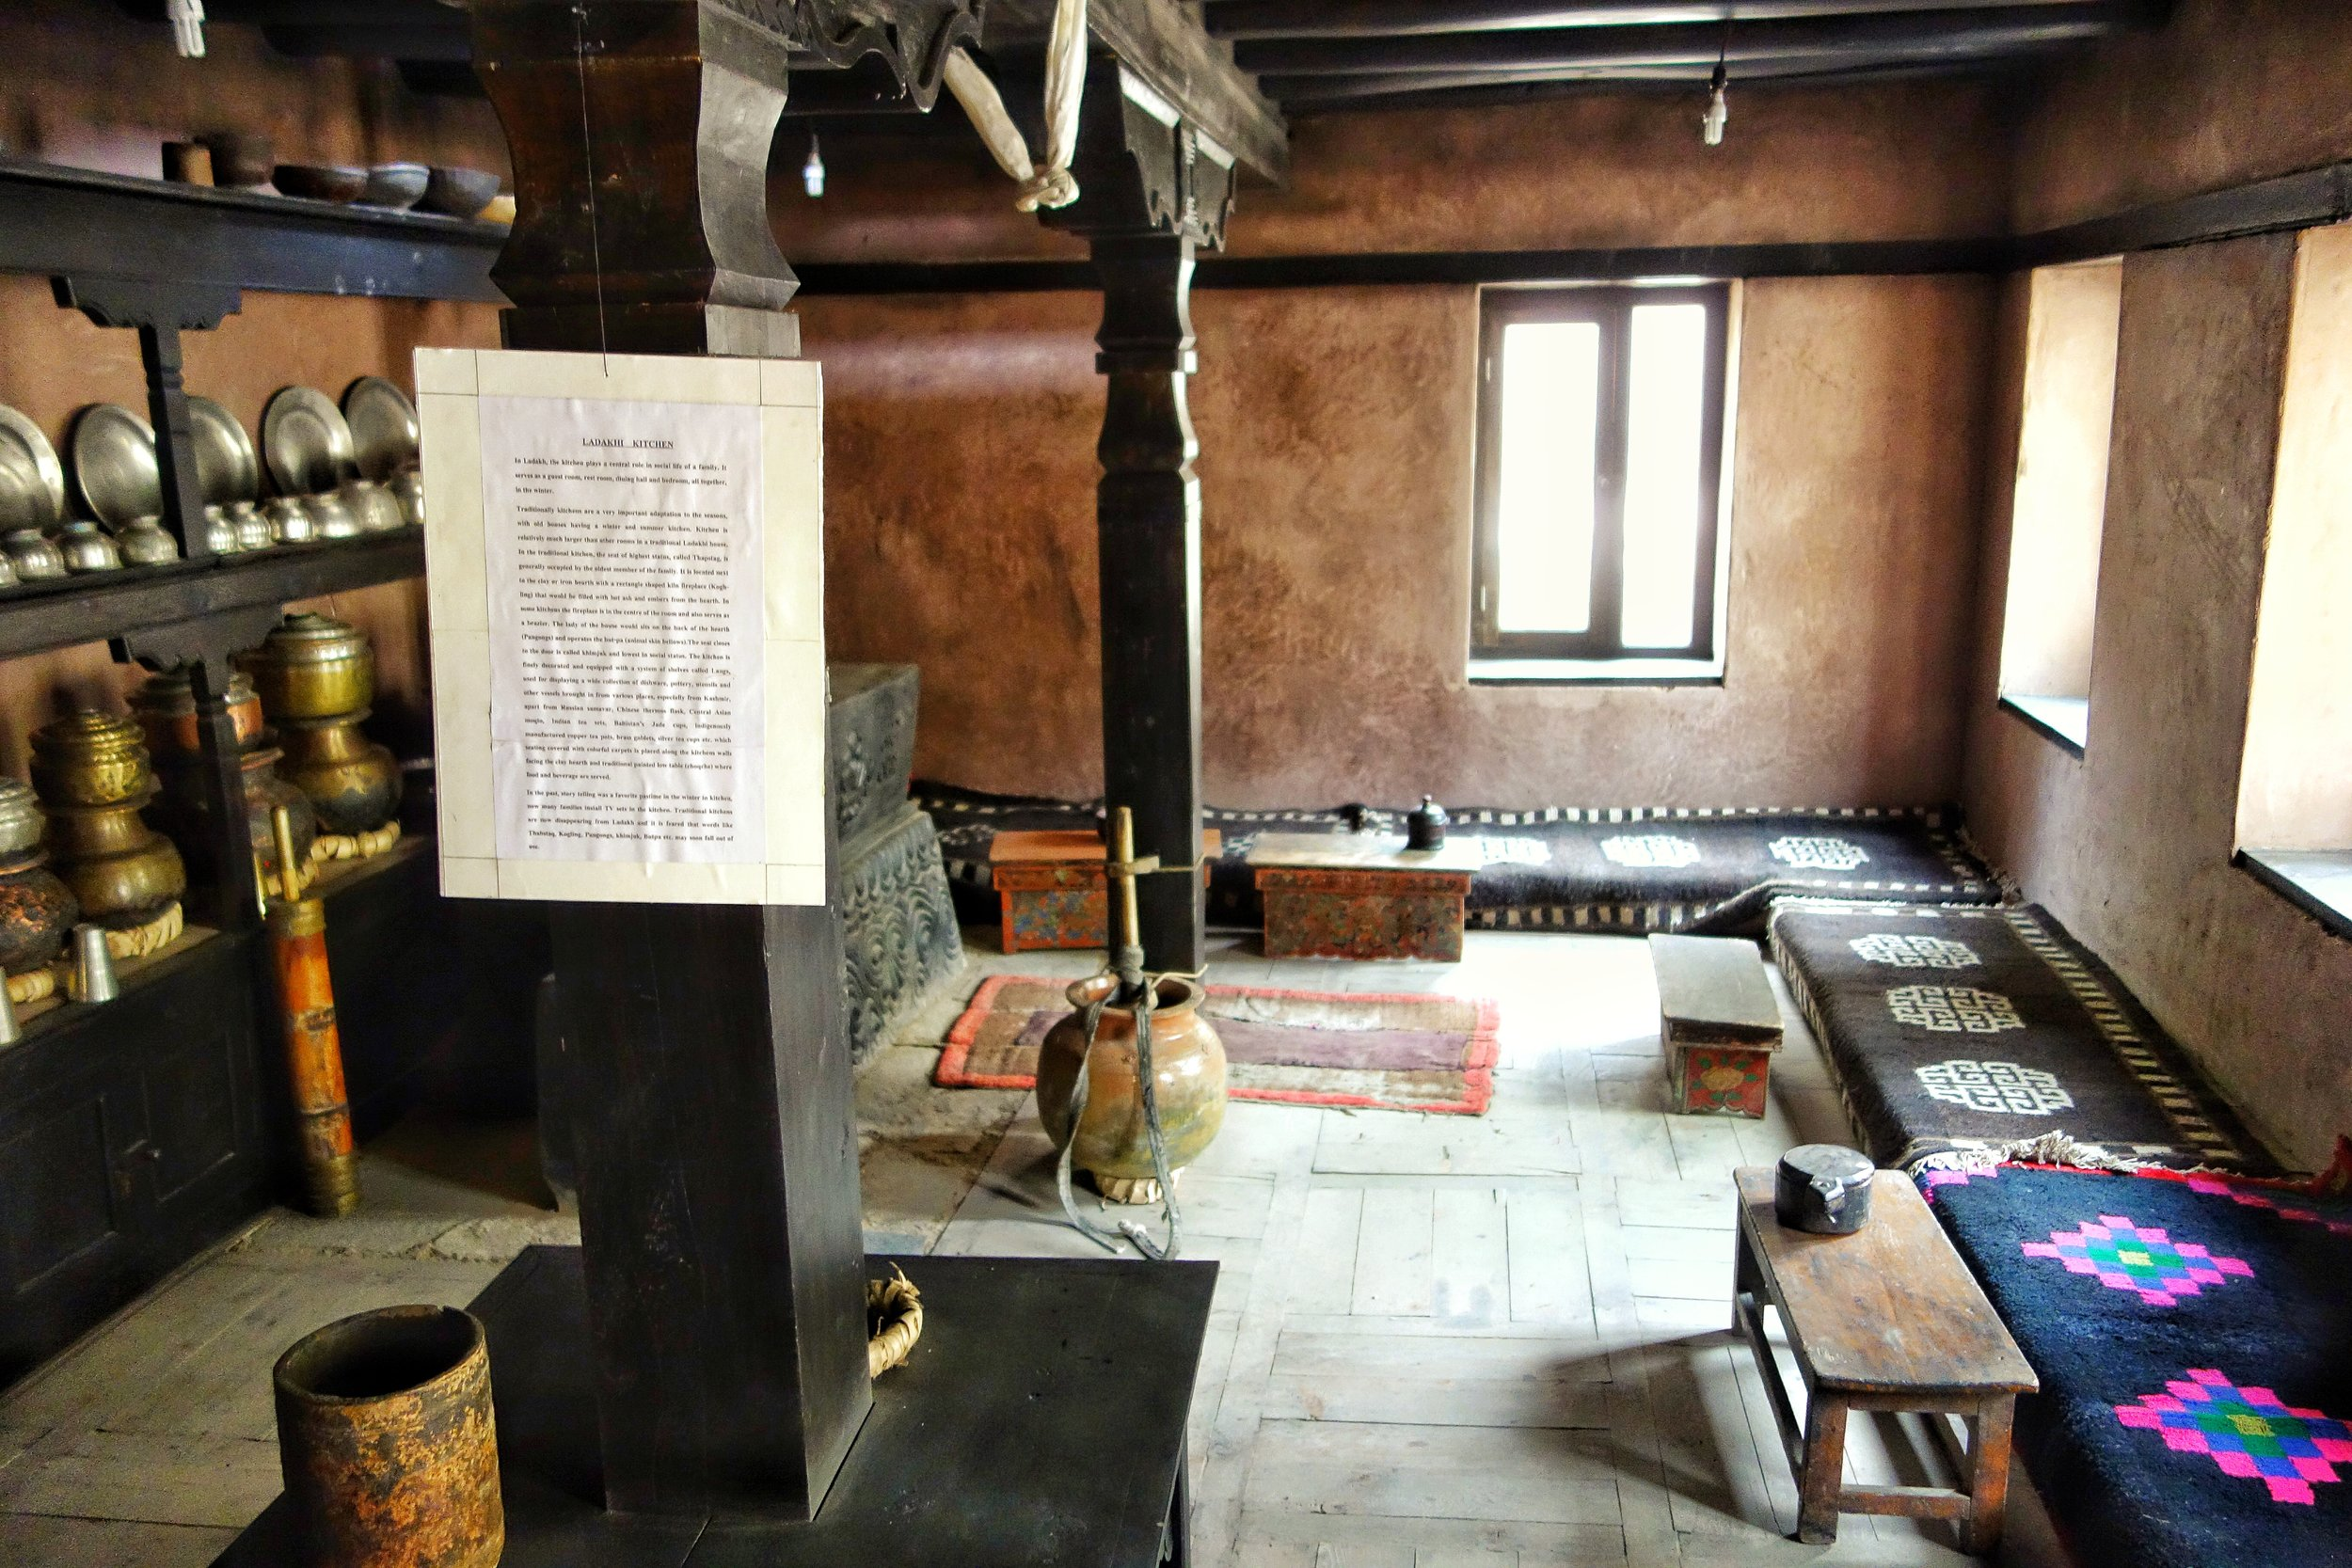 A Traditional Ladakhi Kitchen and Dining Area.